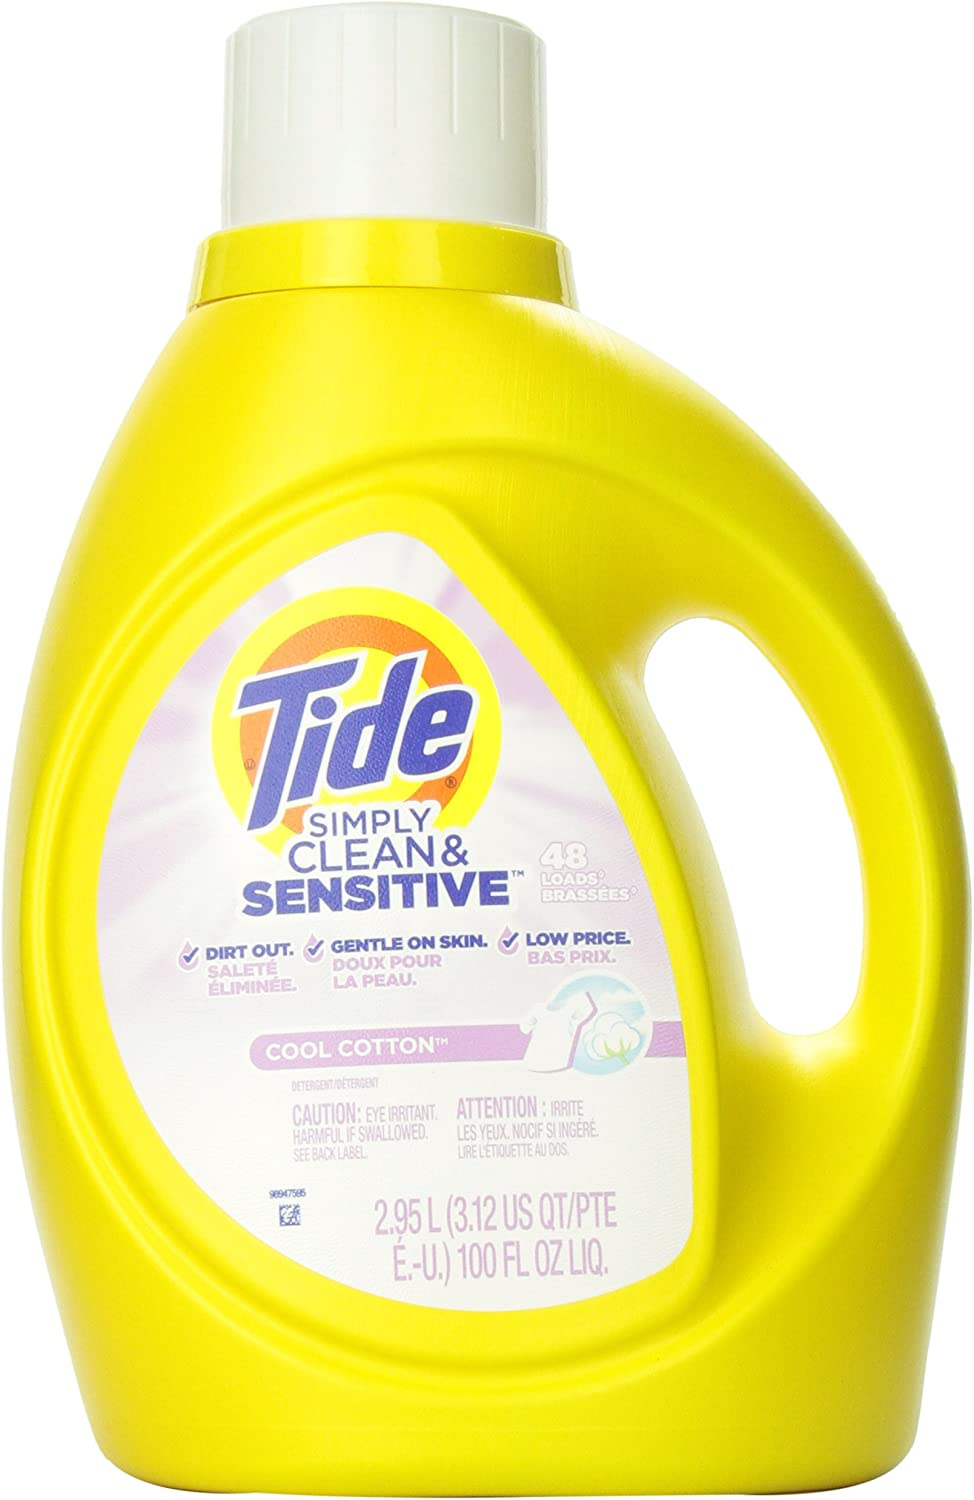 Tide Simply Clean & Sensitive HE Liquid Laundry Detergent - 100 oz - Cool Cotton - 48